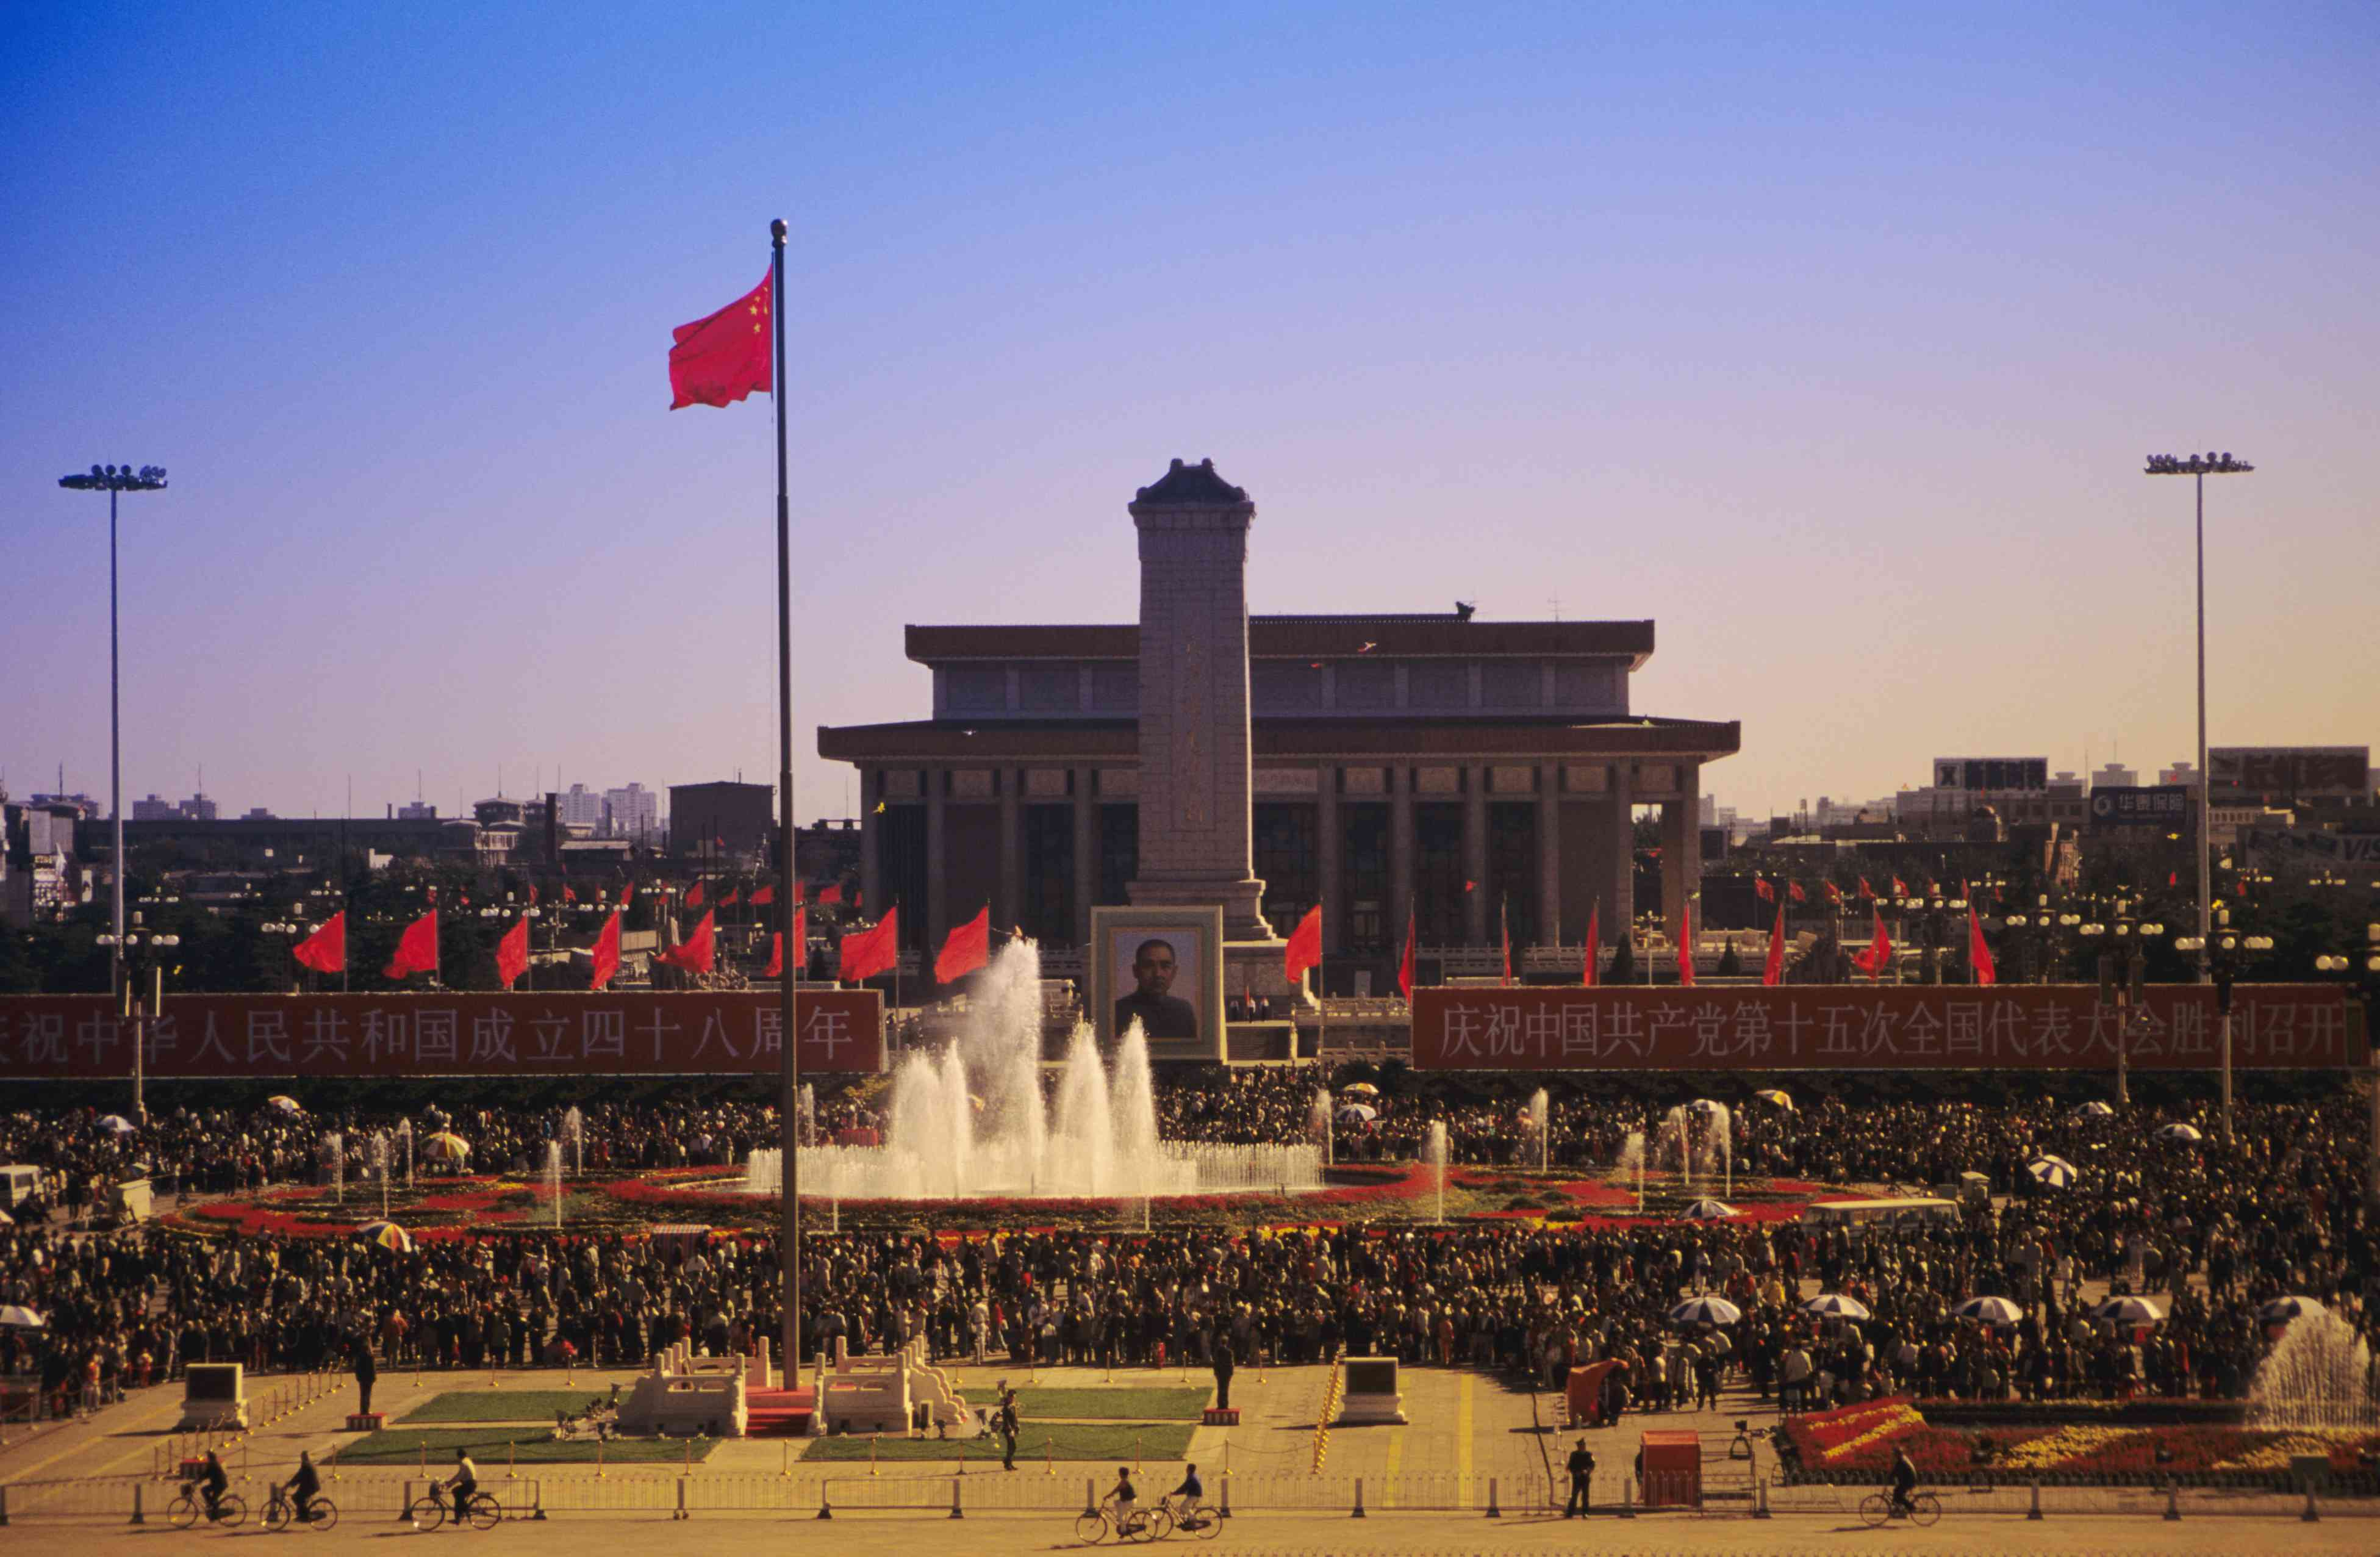 Busy Tiananmen Square during National Day in China